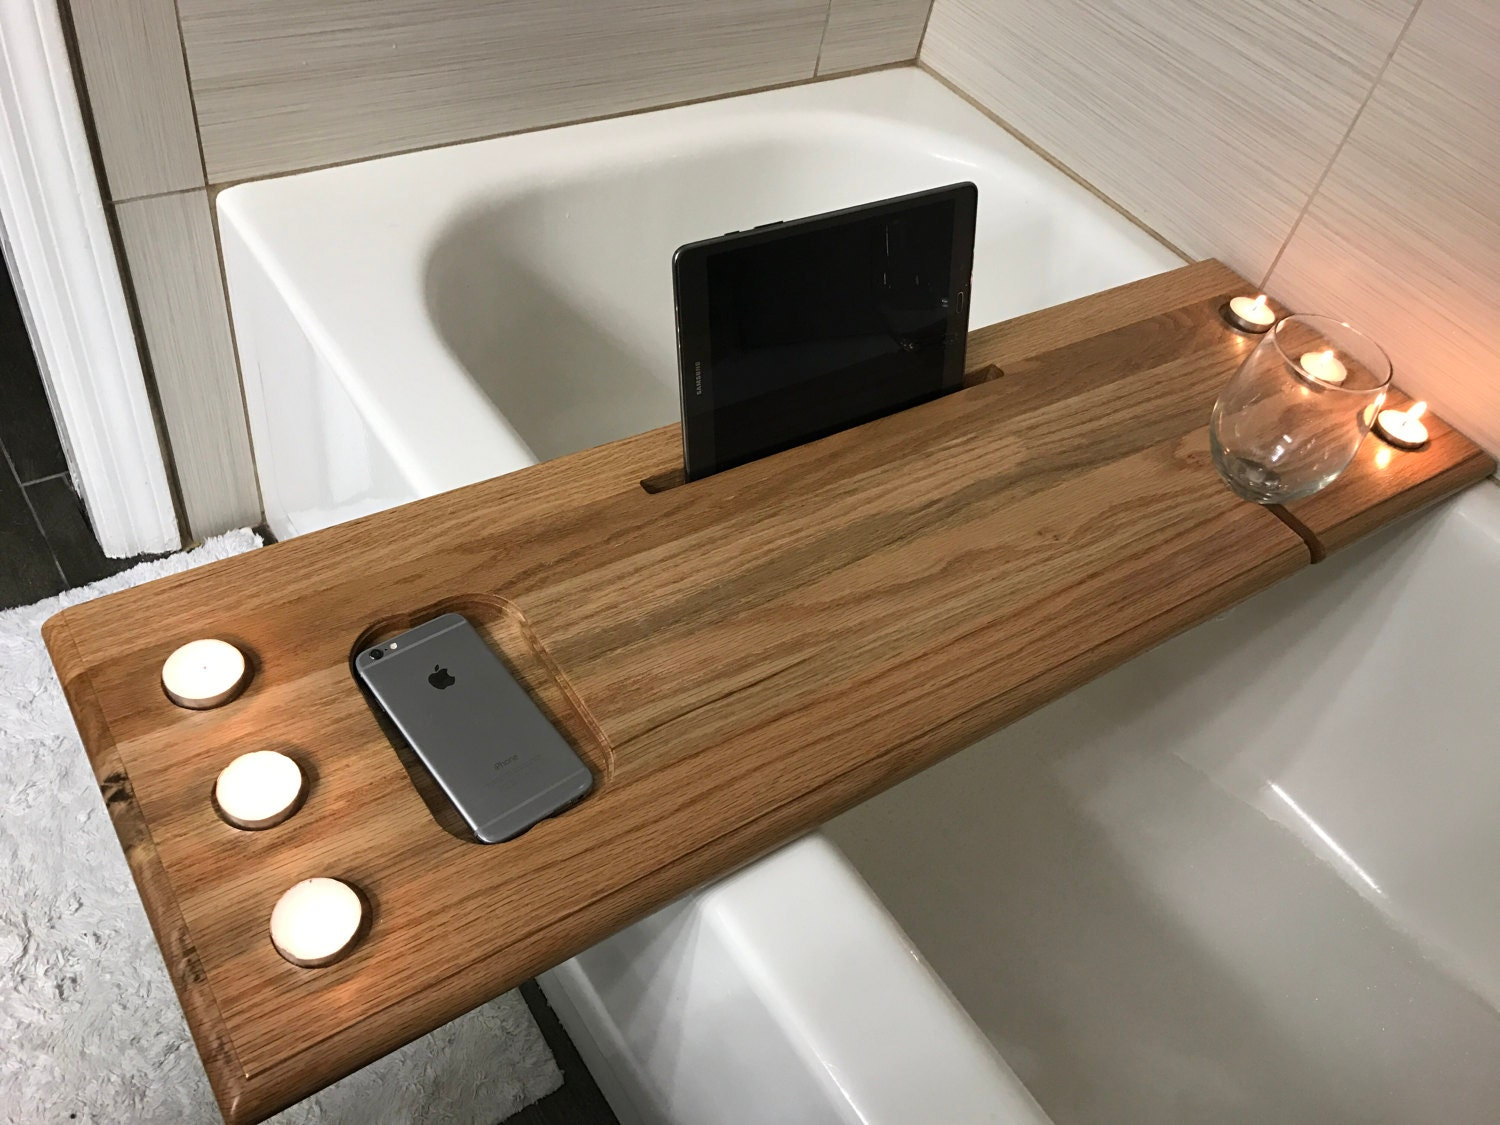 Bath tub caddy bath tray wood bathtub caddy wood bathtub Bathroom design perth uk